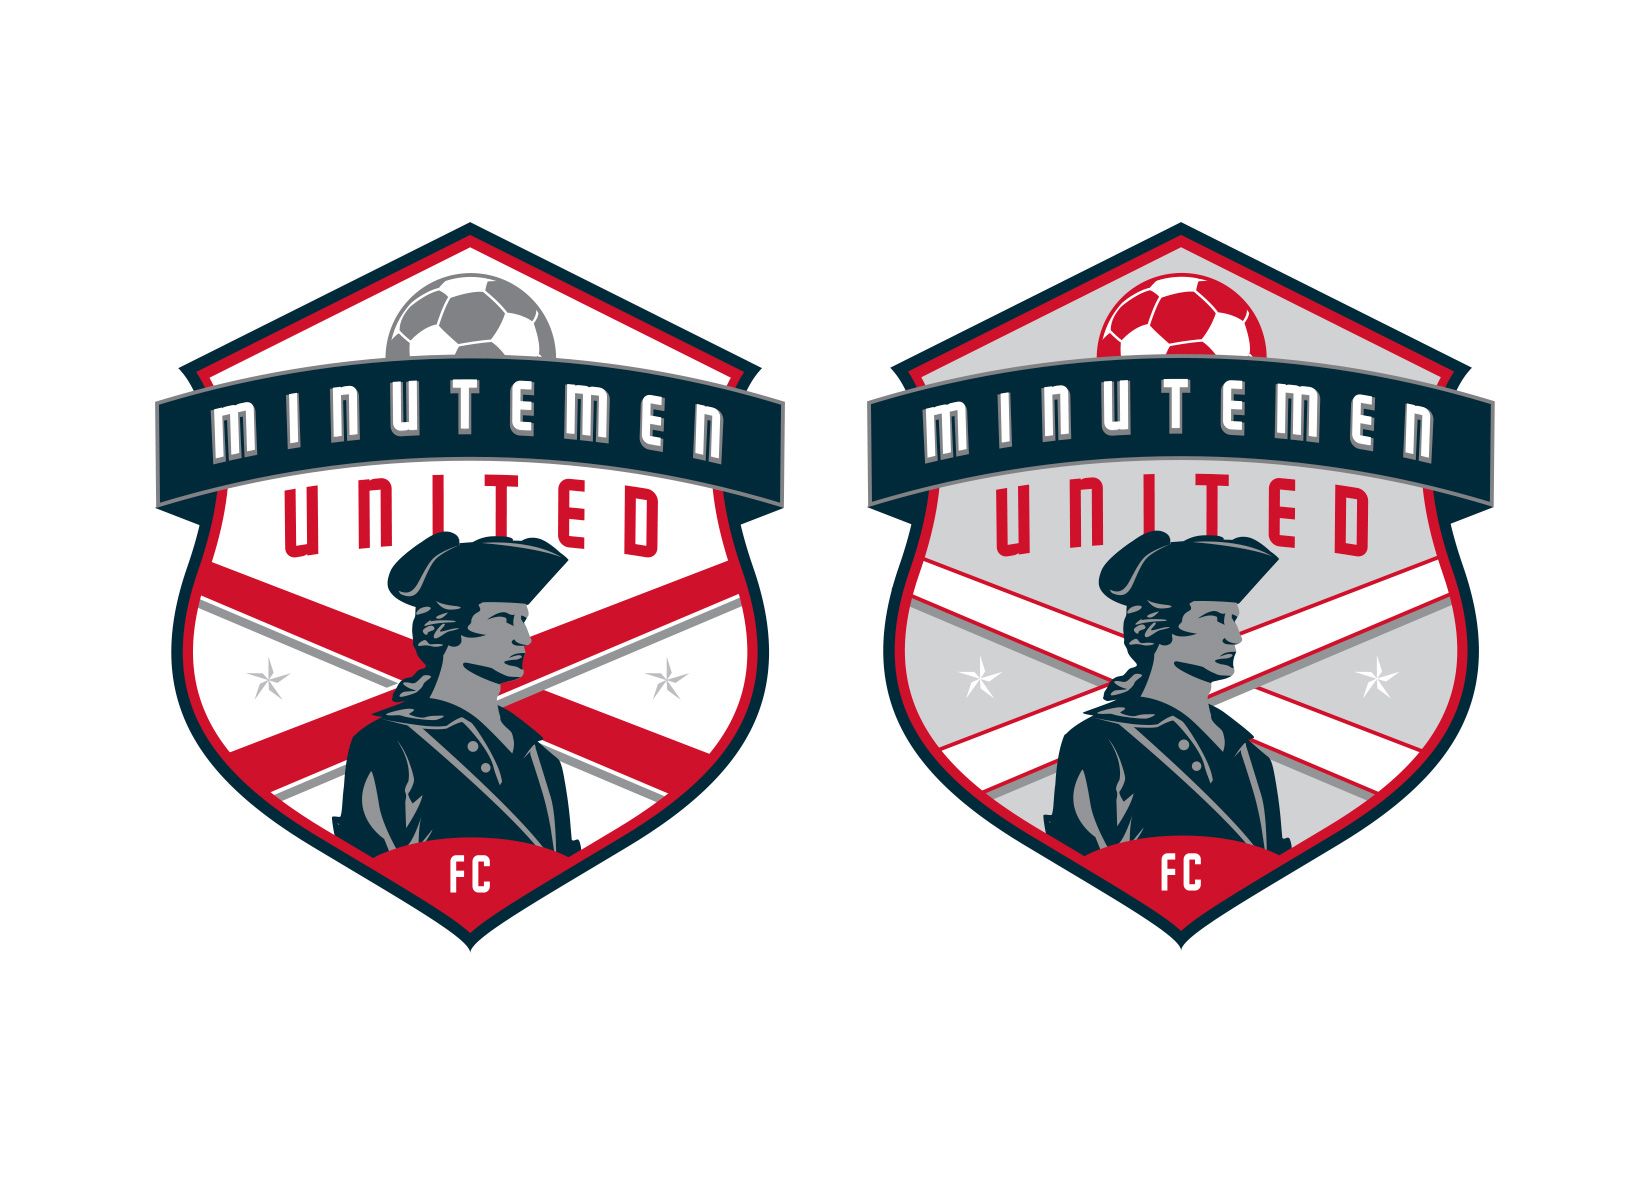 minutemen united sports logo